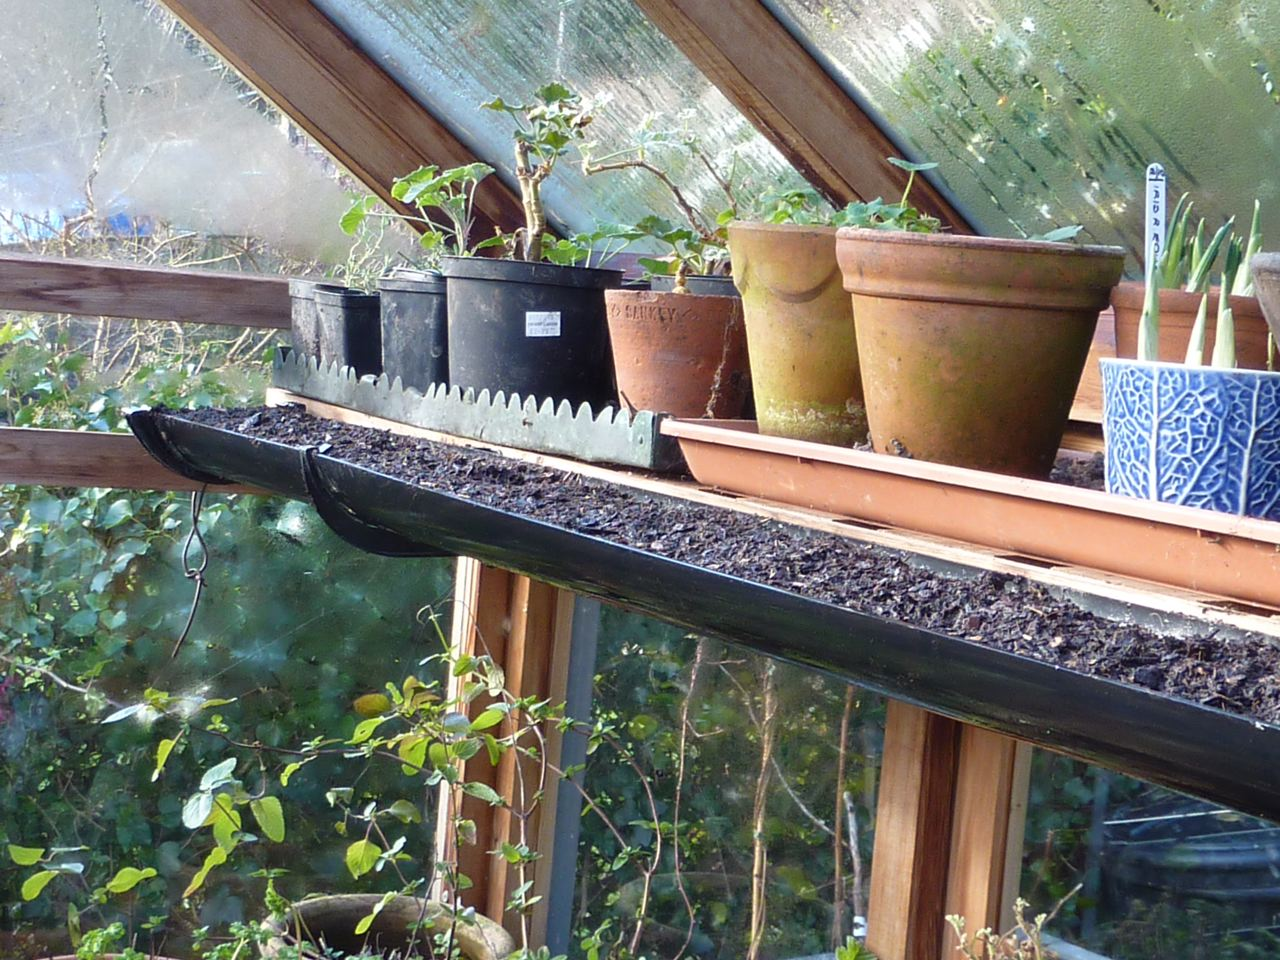 gutter used in greenhouse for planting peas